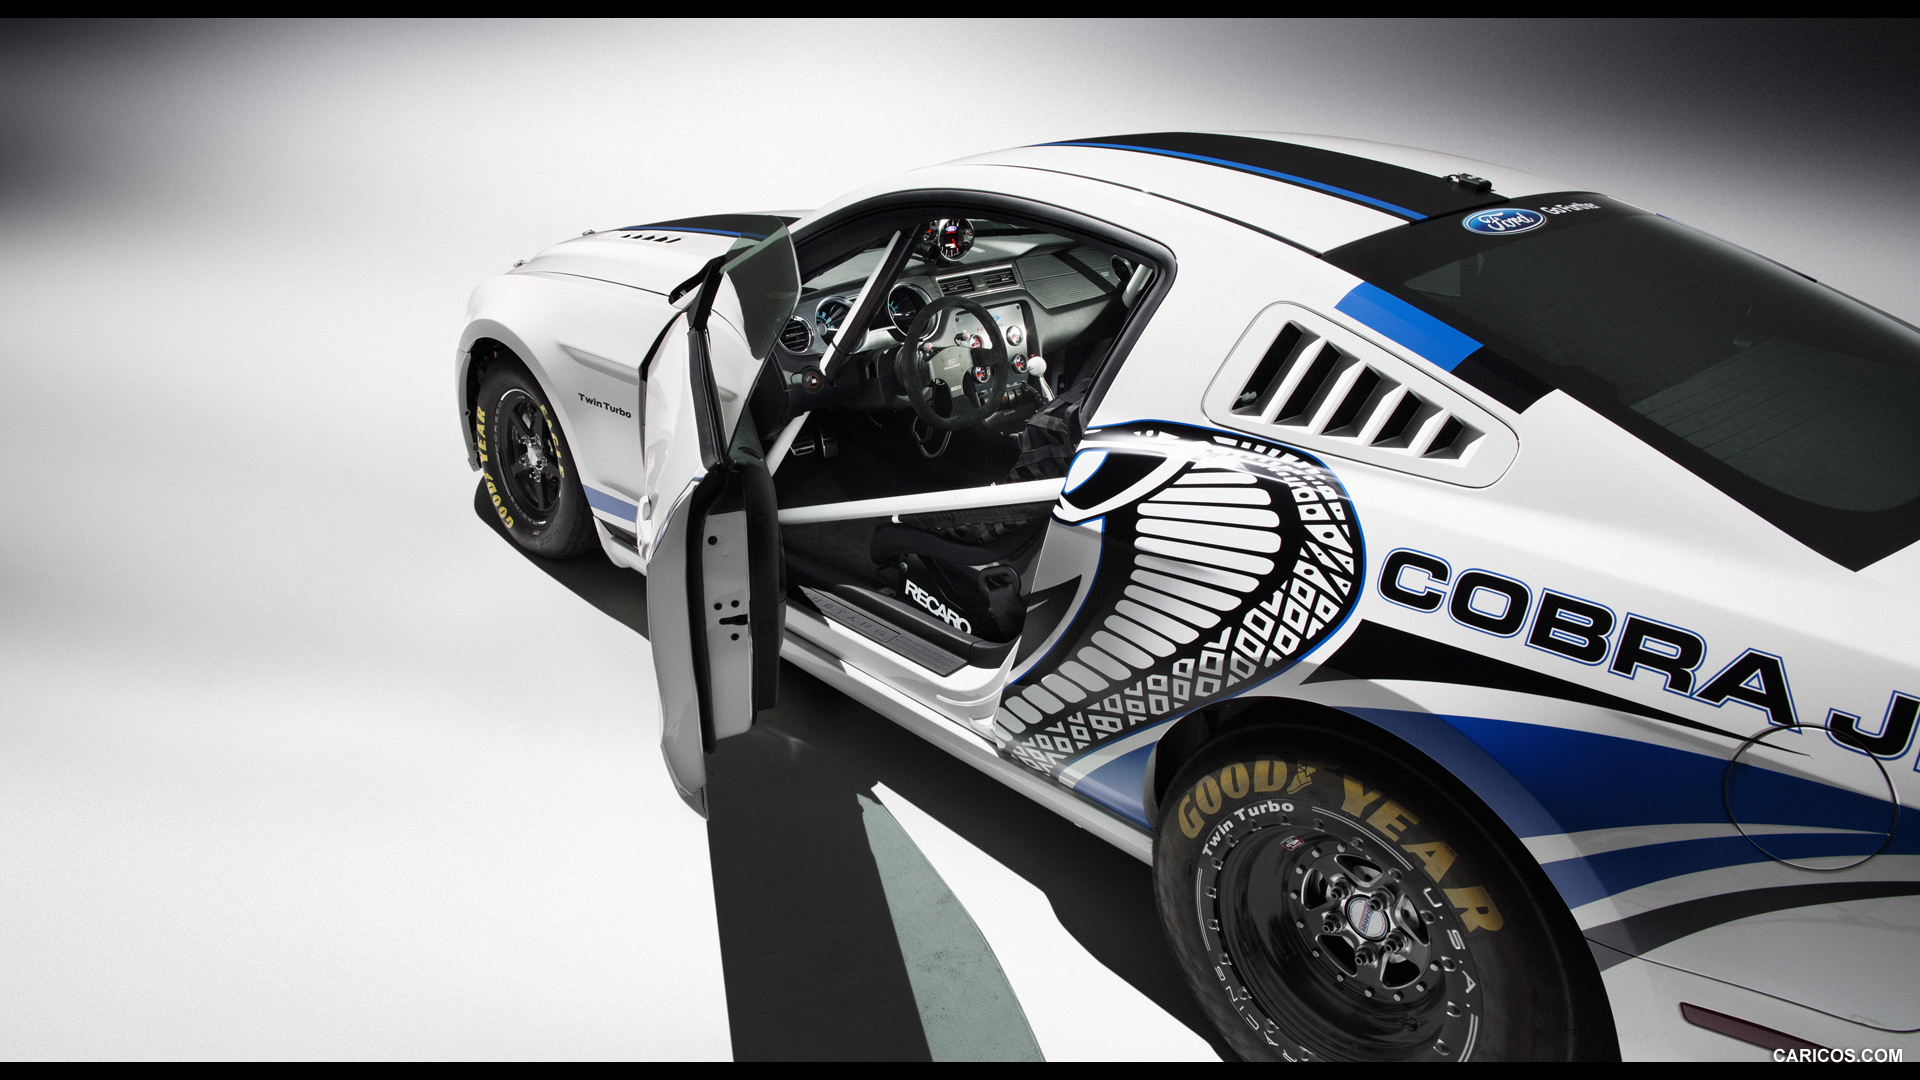 F 150 Cobra >> Ford Mustang Cobra Jet Twin-Turbo photos - PhotoGallery with 28 pics | CarsBase.com - Cars Pictures